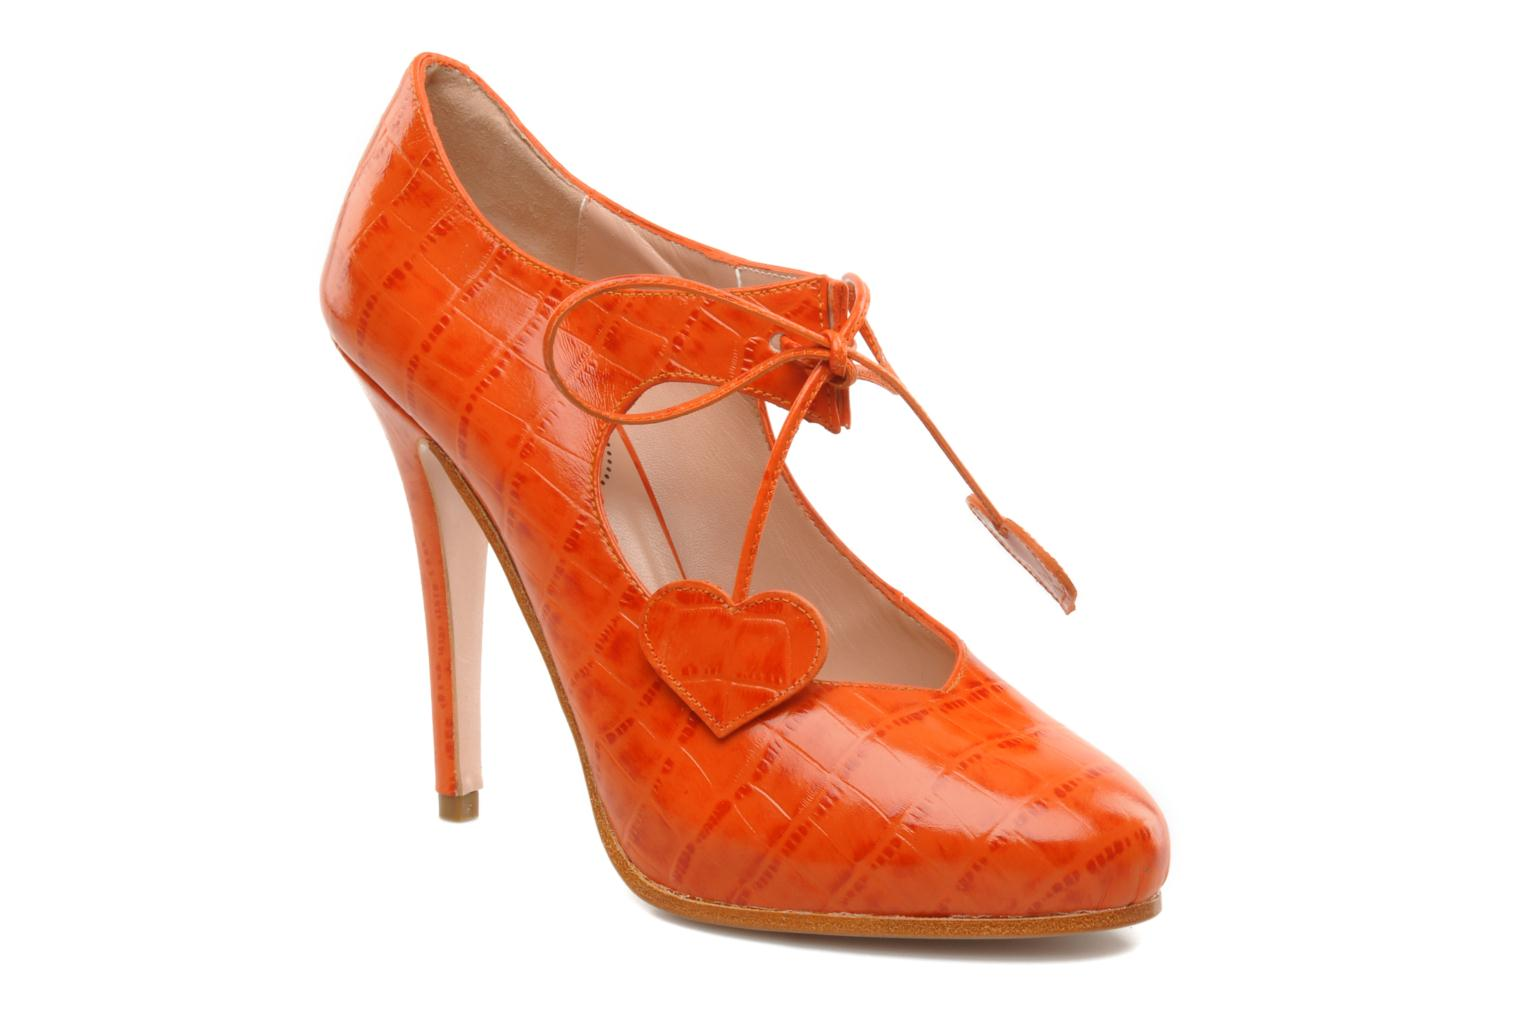 JACQUELINE ORANGE REPTILE EMBOSSED LEATHER